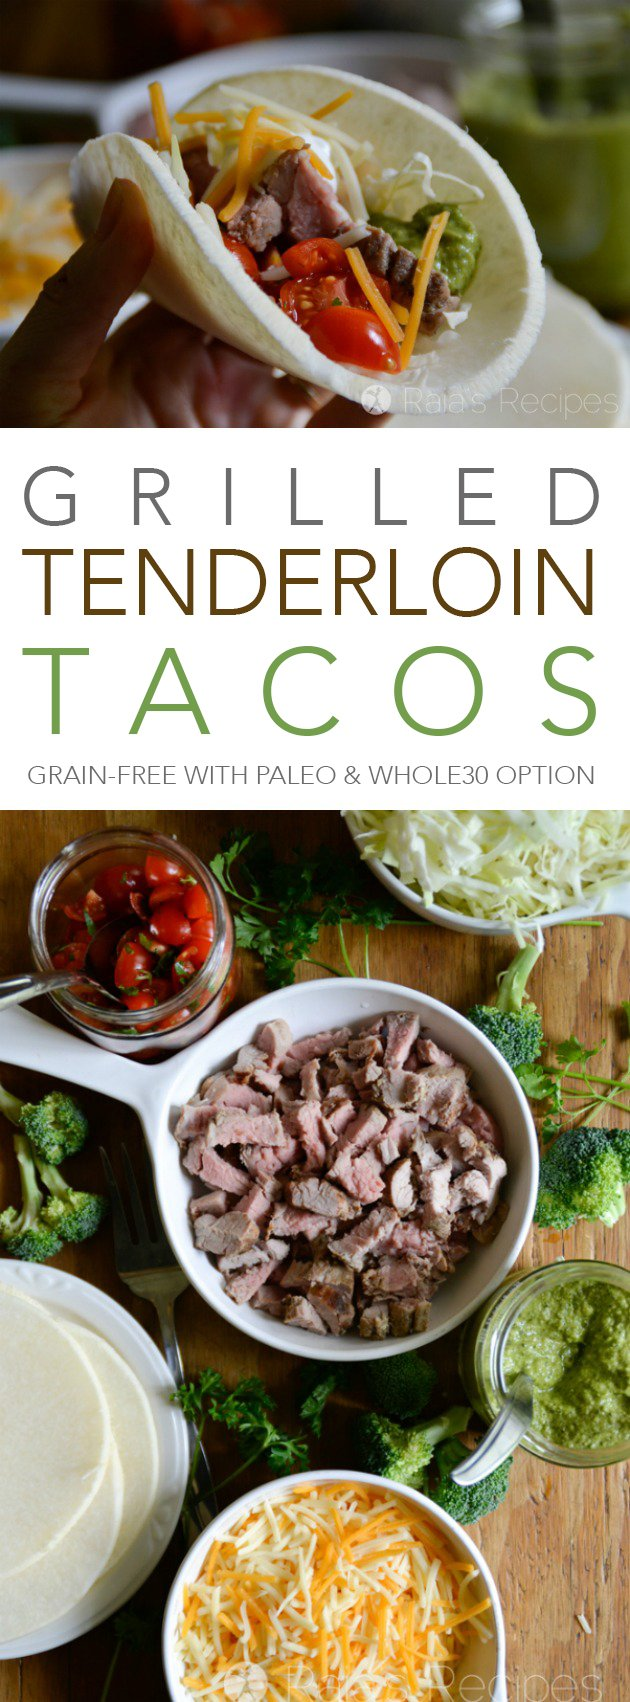 Nothing says summer like grilling, or tacos! These tender Grilled Tenderloin Tacos are made grain-free with jicama shells, and have a paleo & Whole30 option, too!